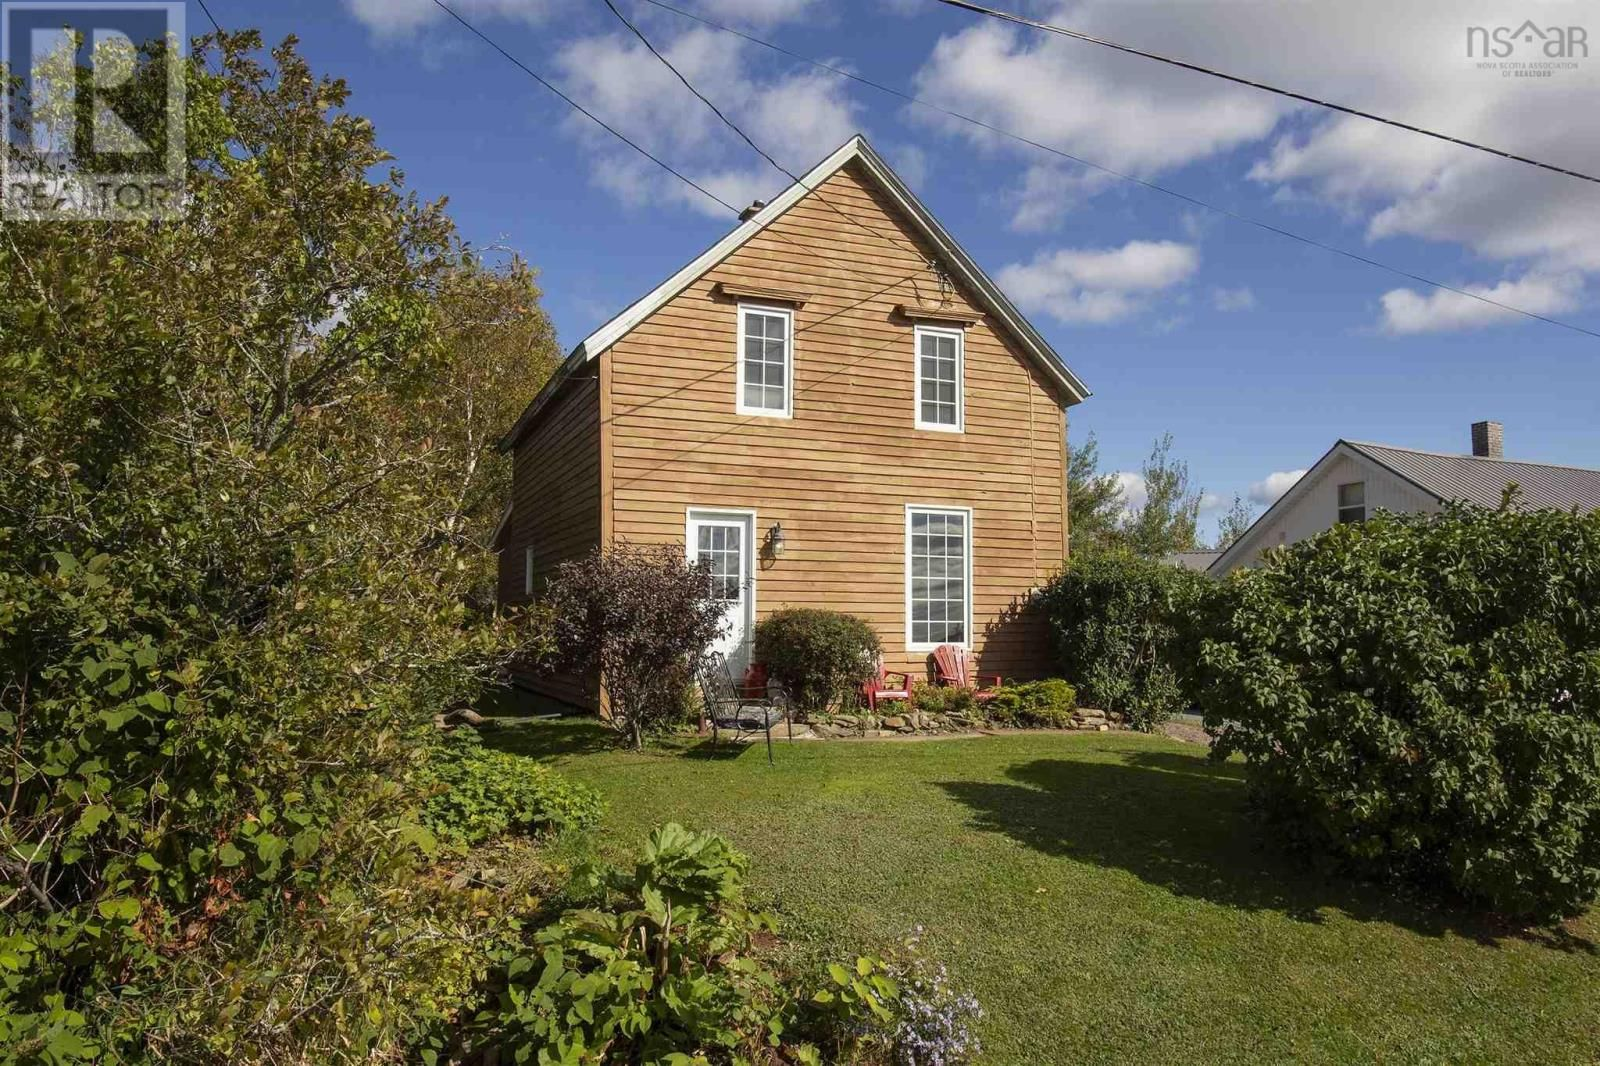 Main Photo: 463 Willow Street in Brookdale: House for sale : MLS®# 202125378